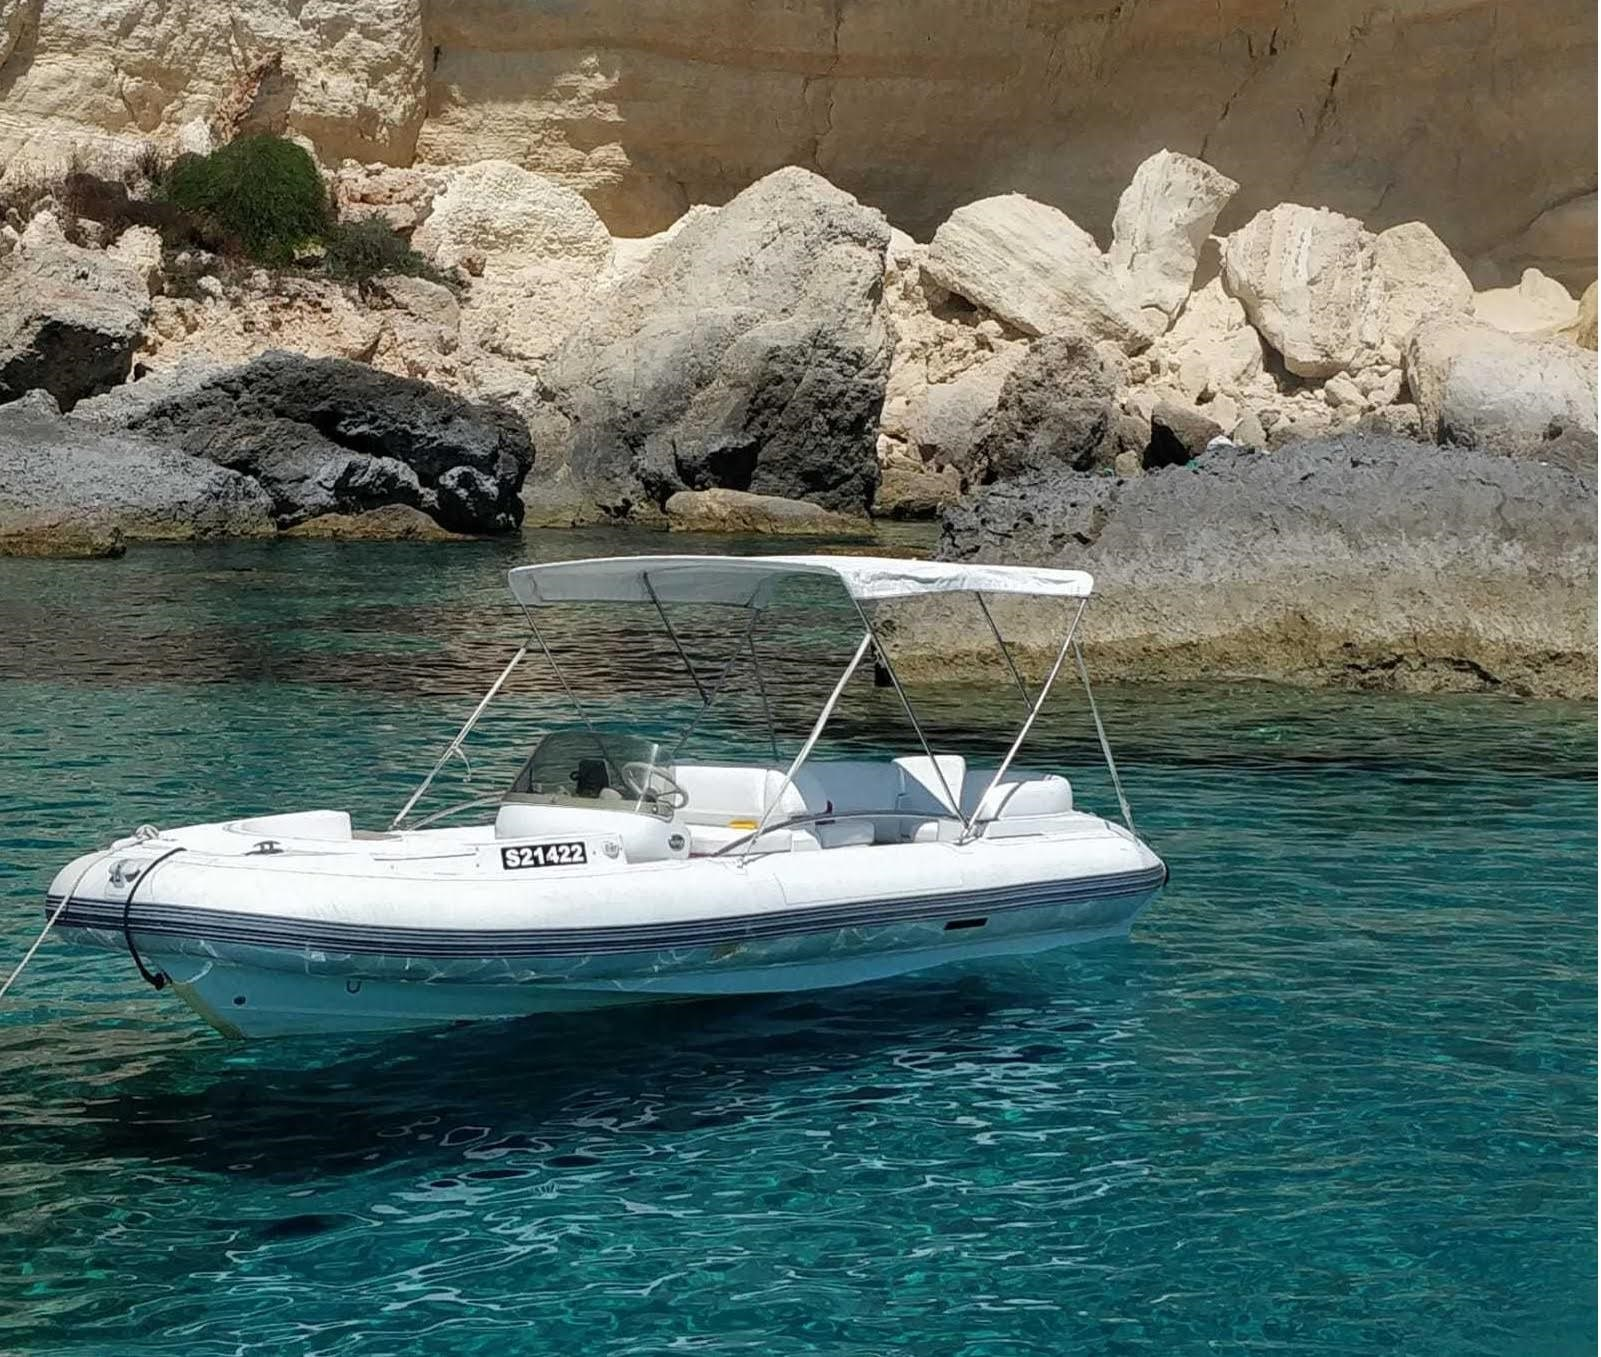 Rent / charter Rib / Dinghy for Conference & Incentive / Meetings / Corporate, Full Day Tour, Half Day Tour, Harbour Cruise, Private Charter & Team Building Activities in Malta & Gozo - Castoldi JT21